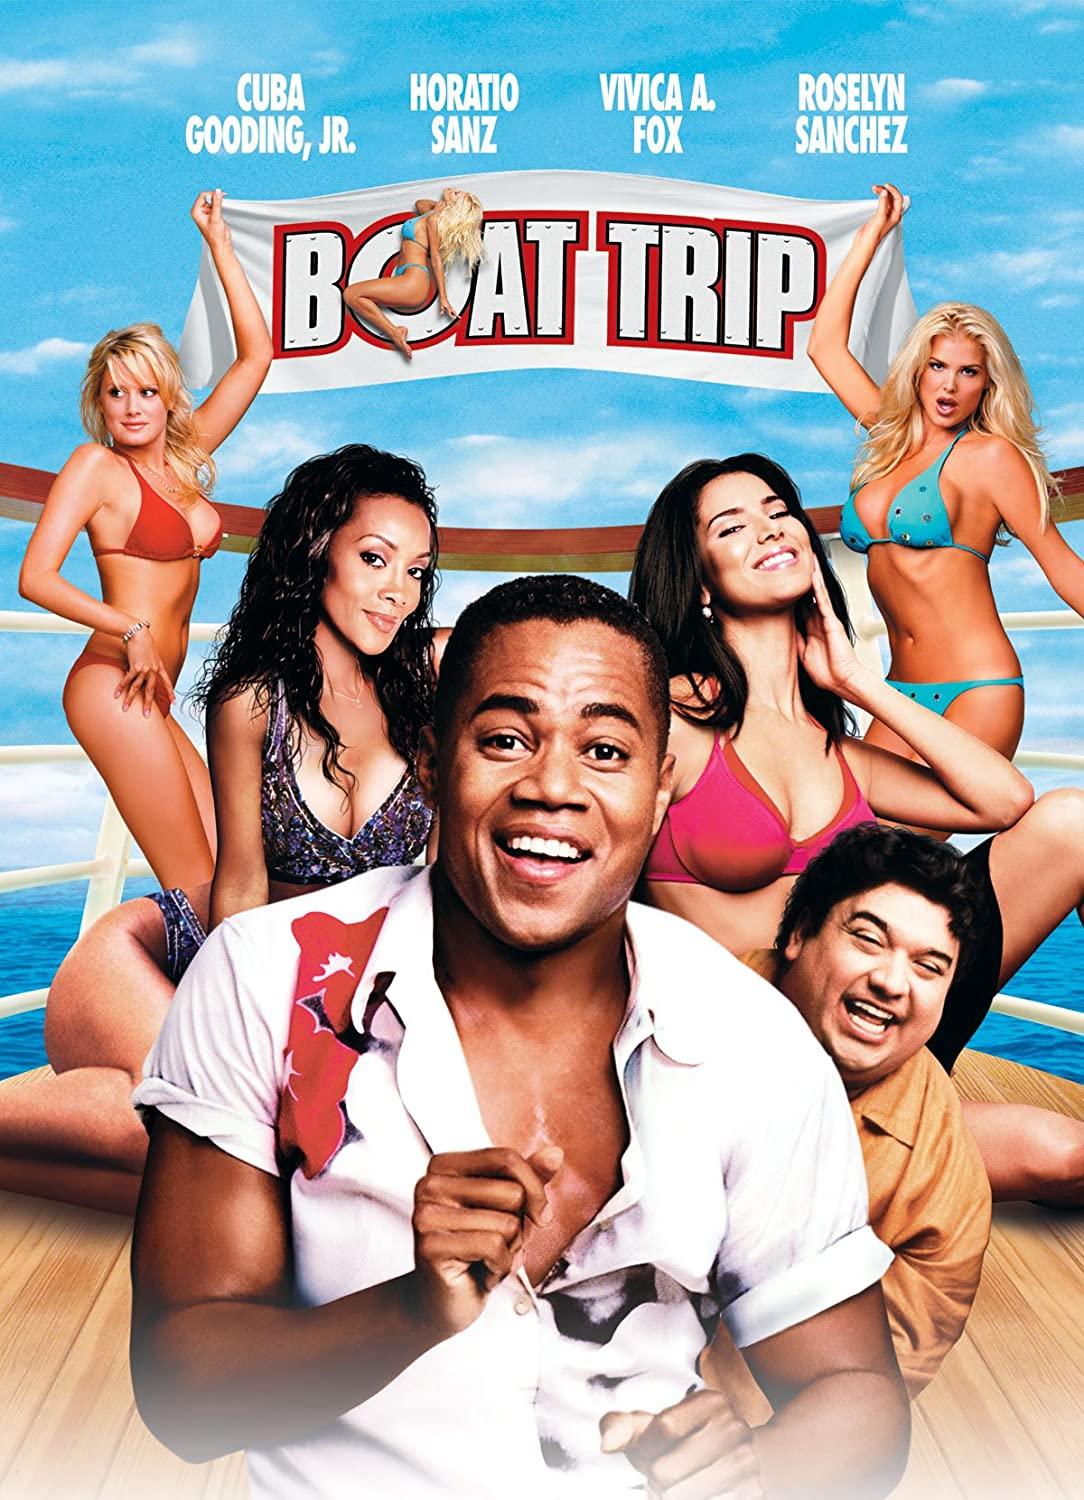 18+ Boat Trip 2002 English 720p HDRip 800MB Free Download